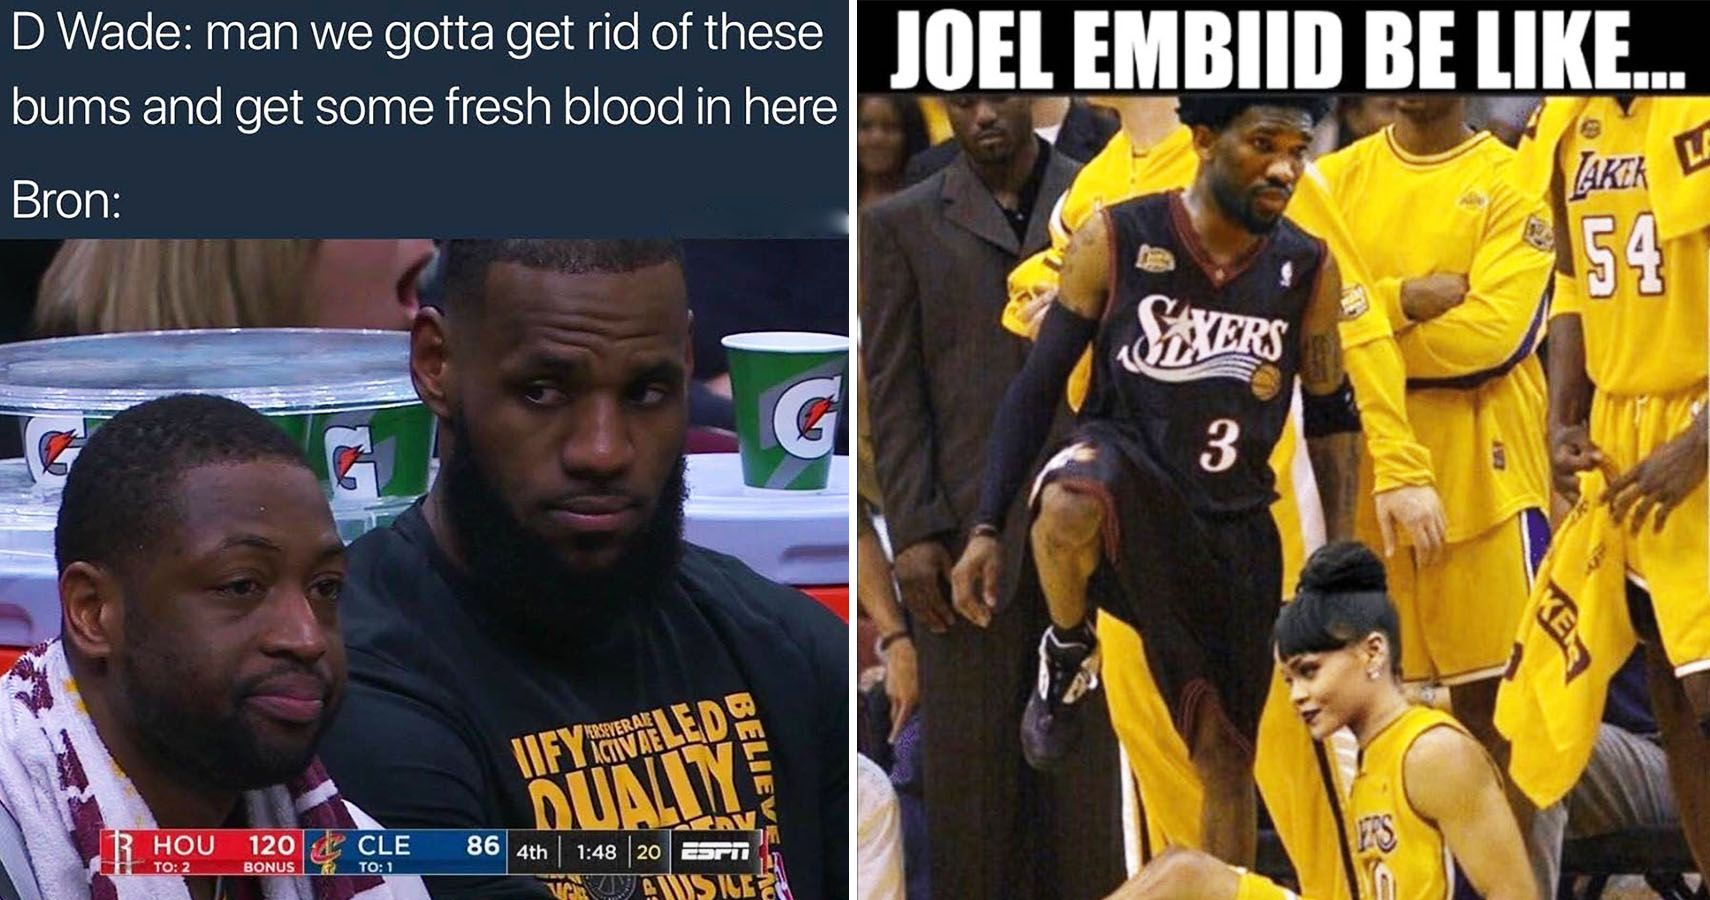 Funny Meme Nba : The most hilarious memes of the nba season so far